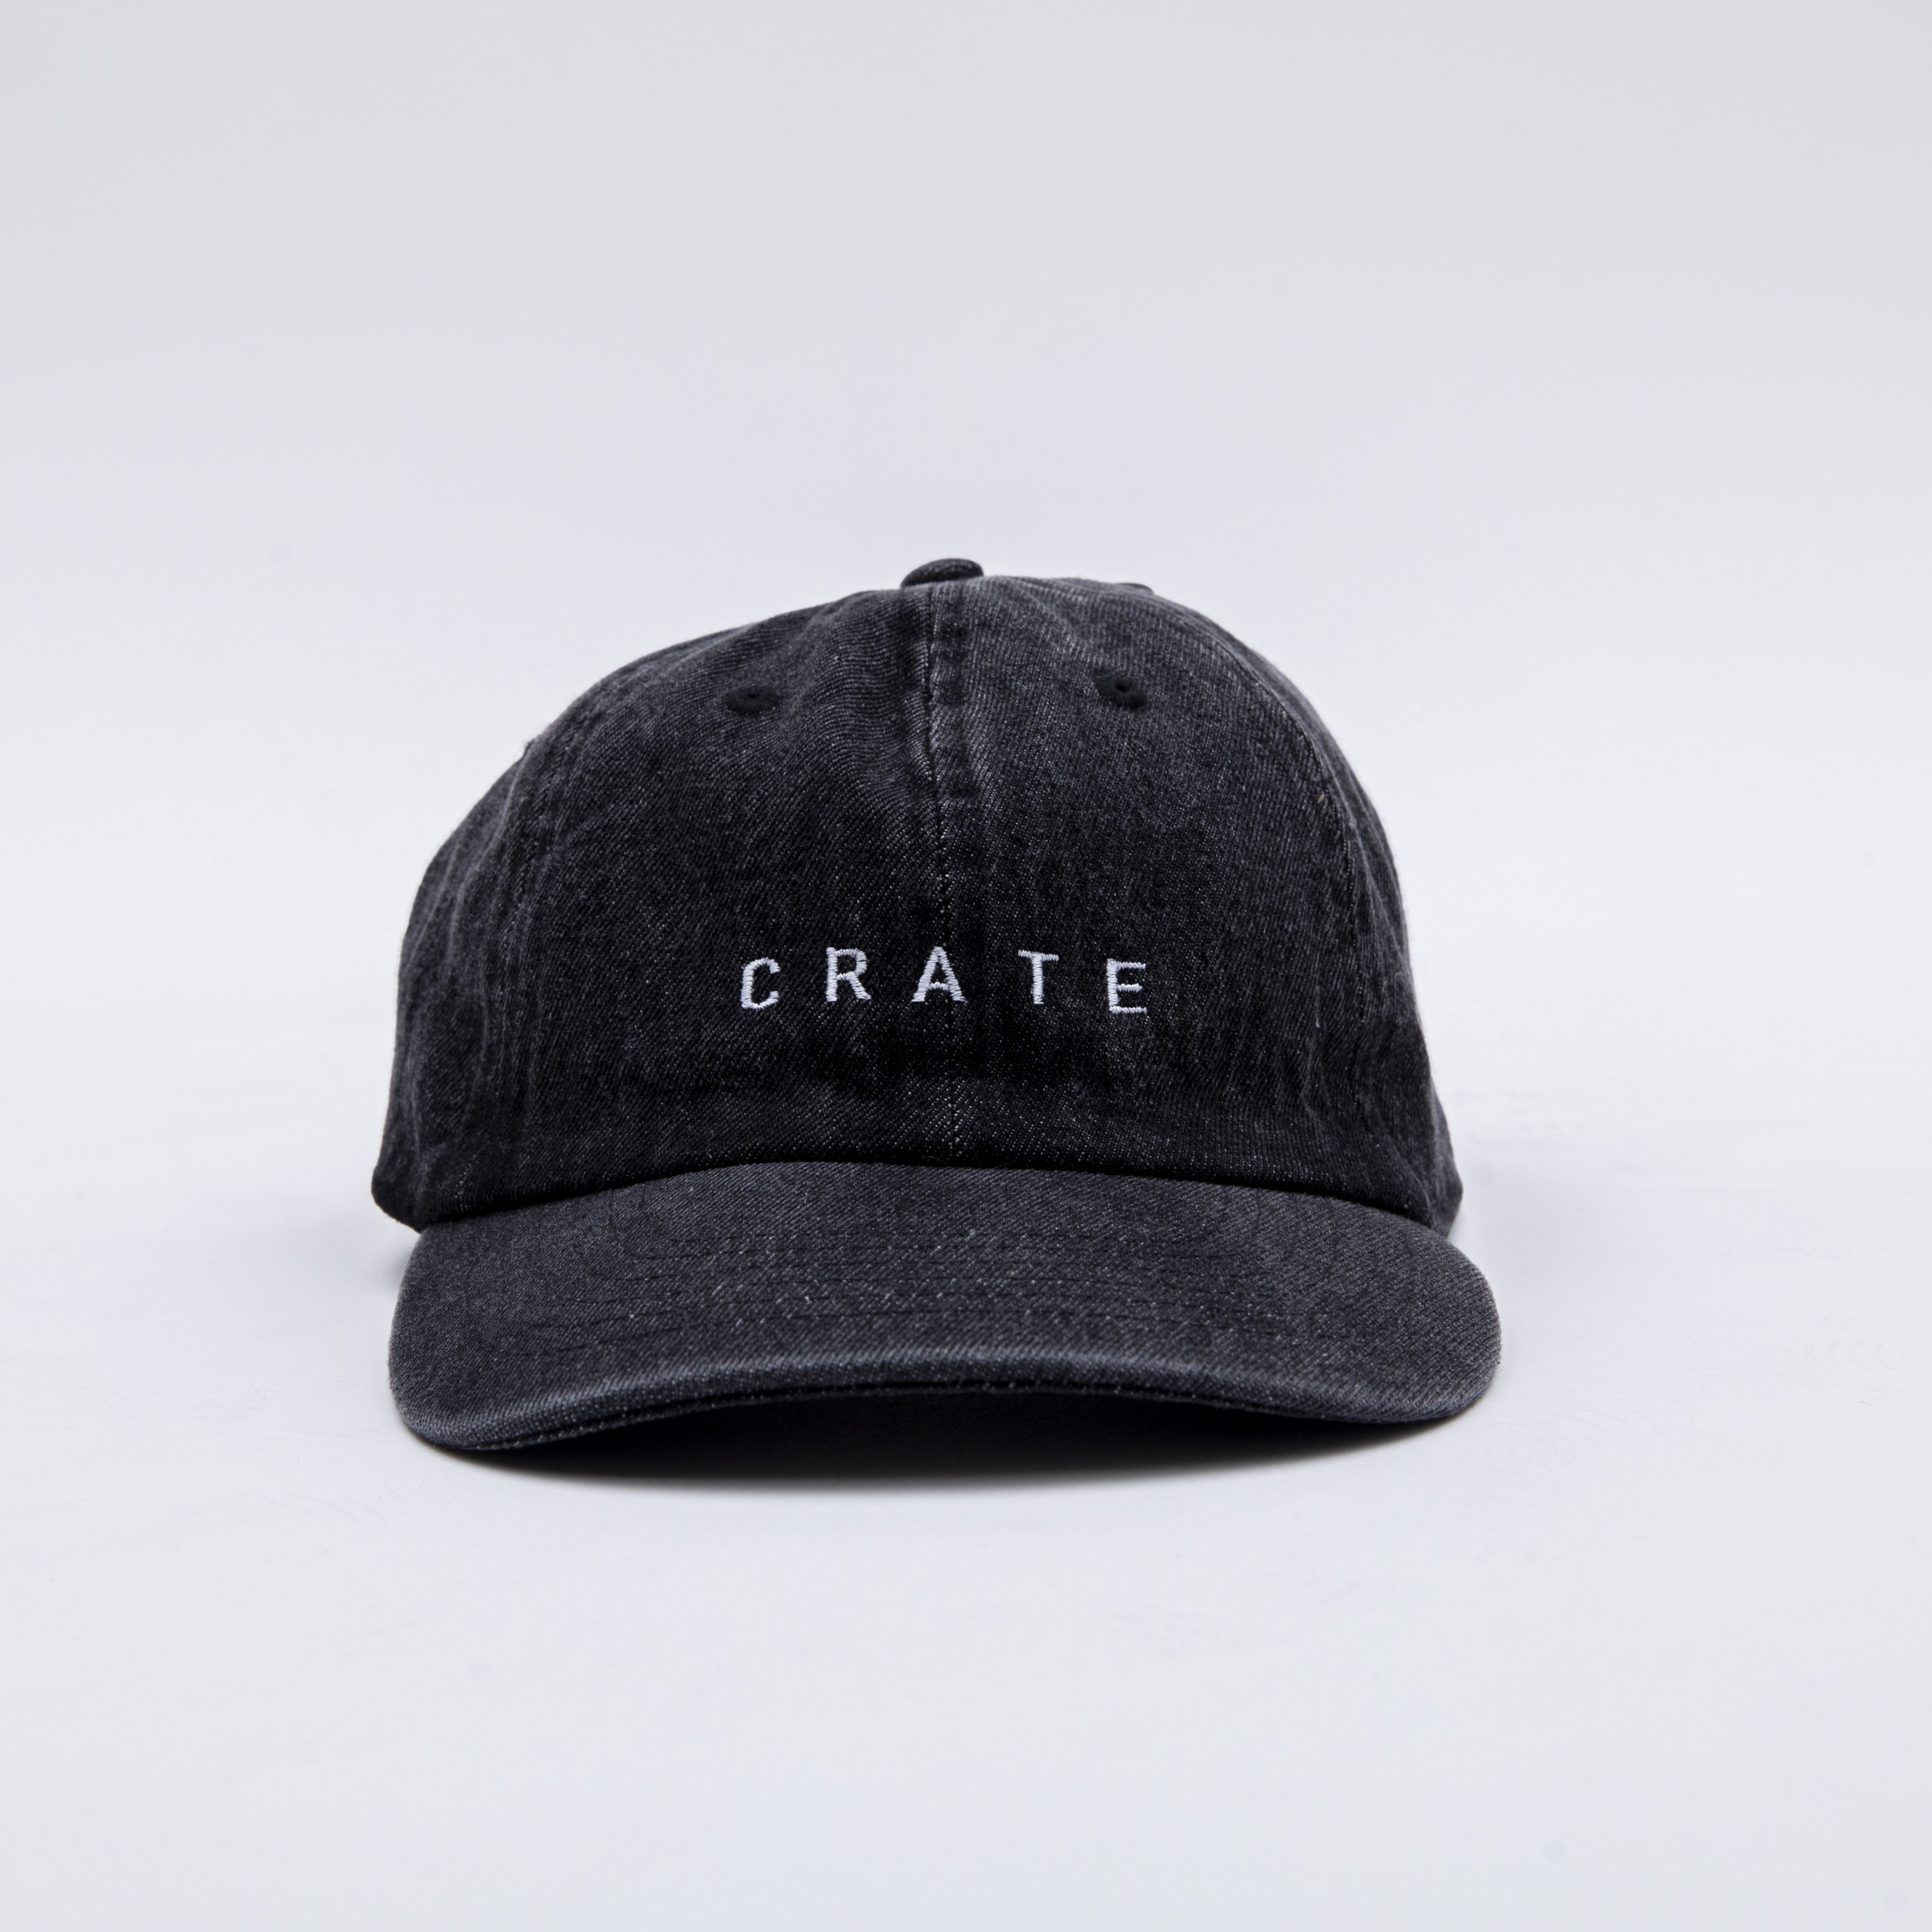 CRATE BLACK DENIM CAP